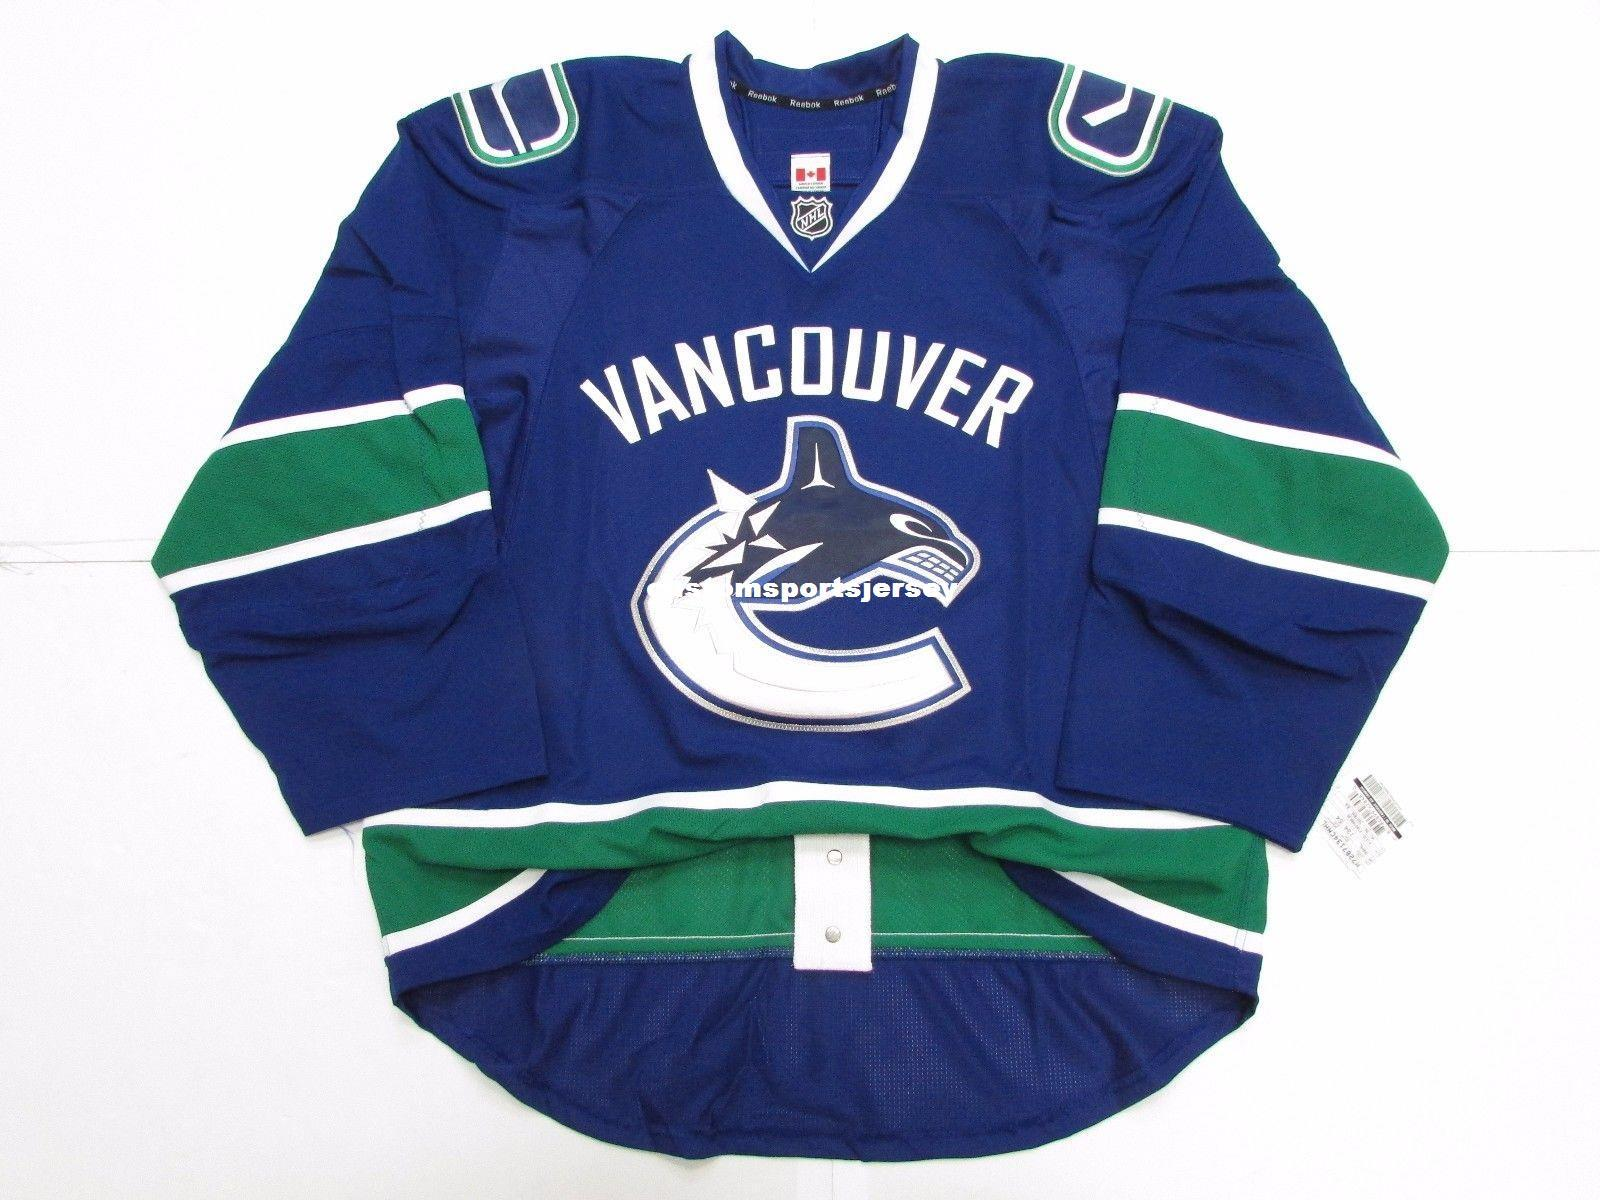 2019 Cheap Custom VANCOUVER CANUCKS HOME TEAM ISSUED JERSEY Stitch Add Any  Number Any Name Mens Hockey Jersey XS 5XL From Customsportsjersey a575c5464